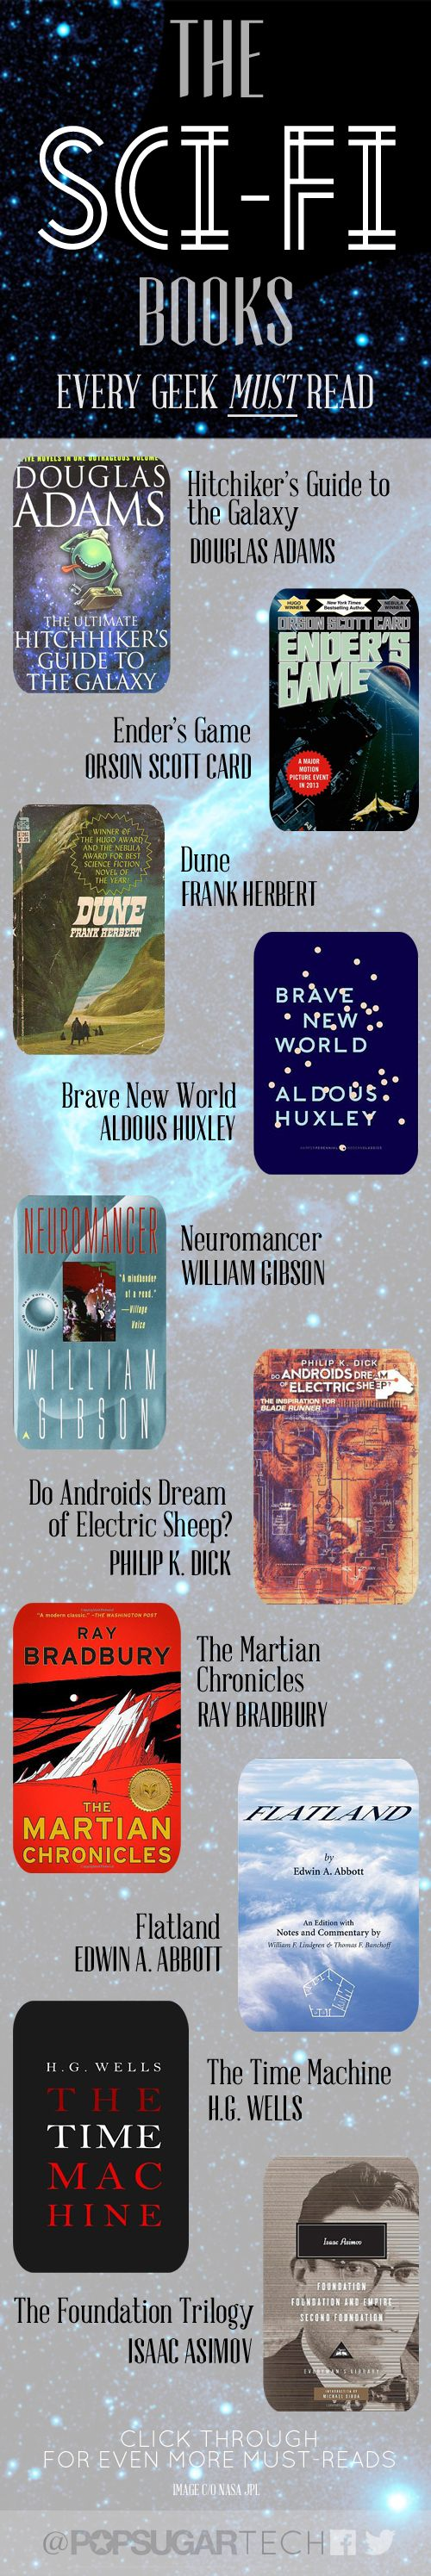 60 best imagined worlds images on pinterest science fiction